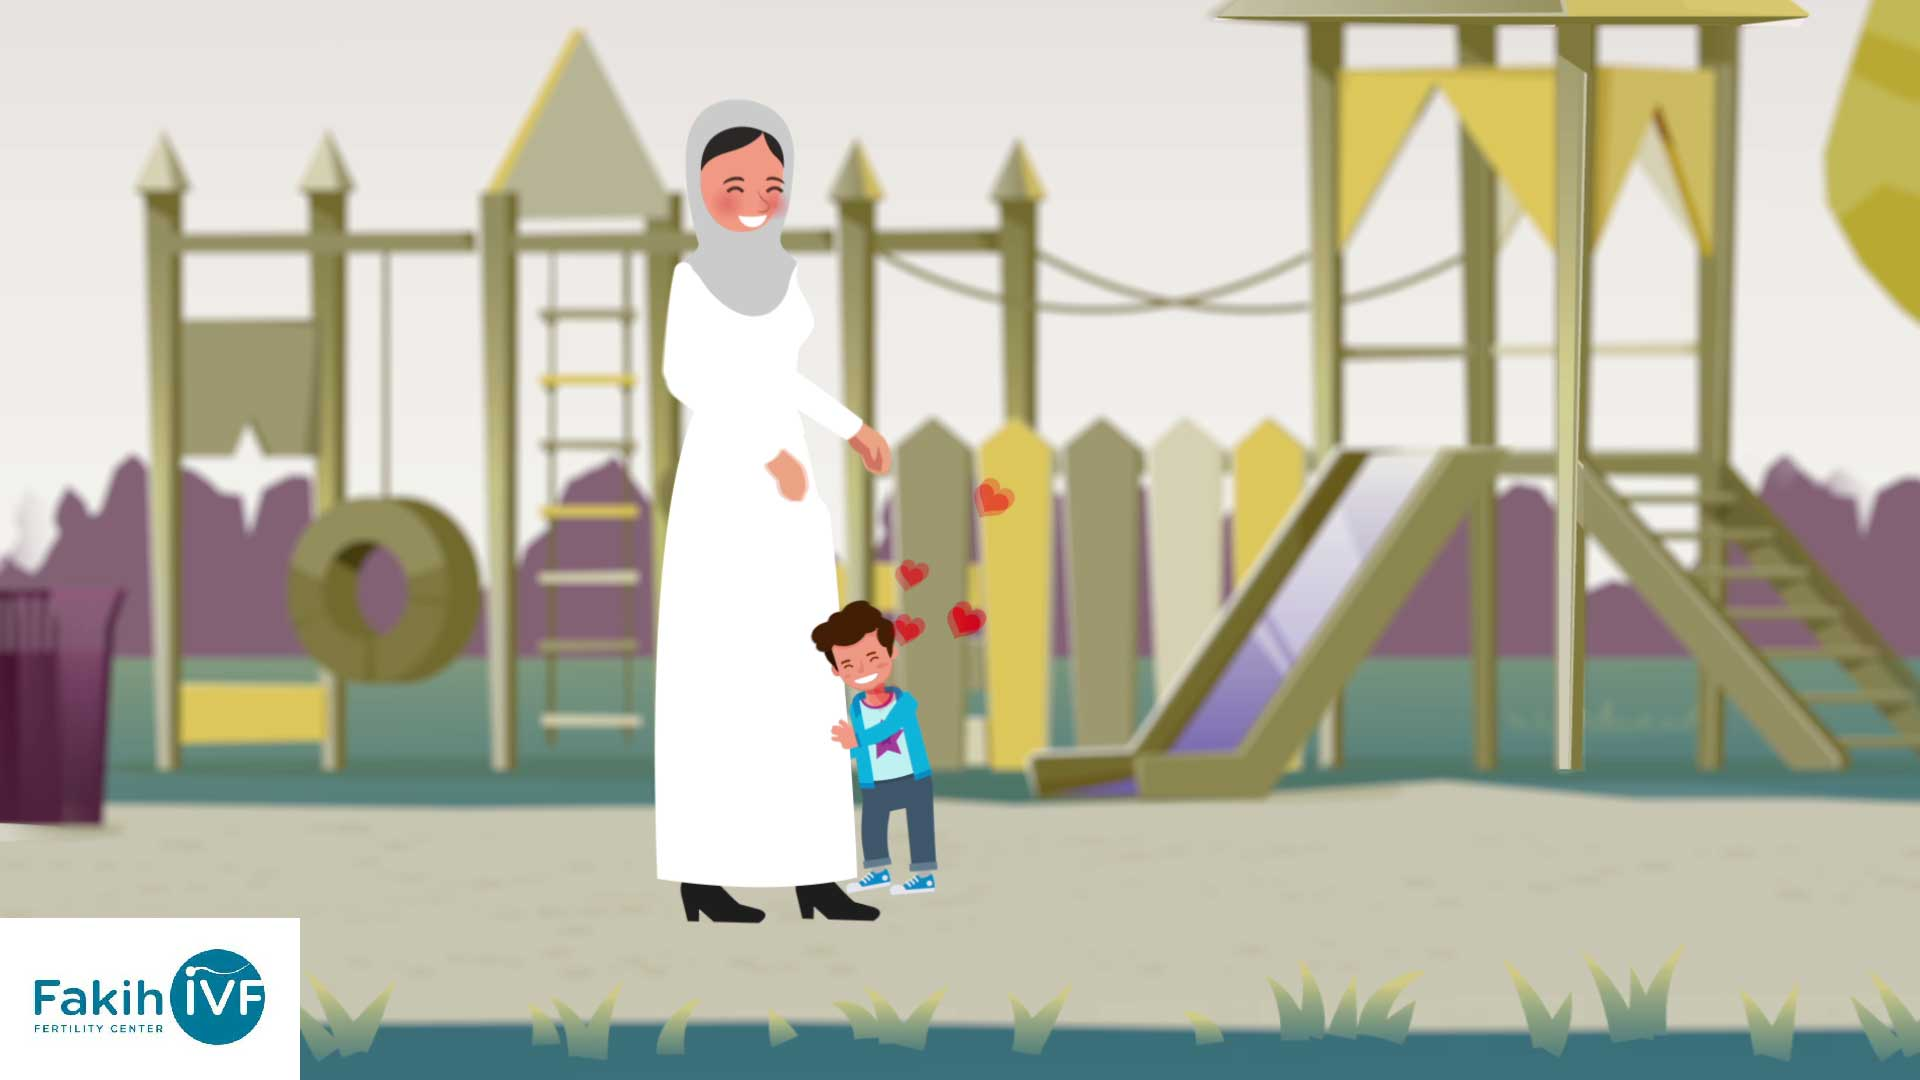 Animation Video for Fakih IVF Fertility Center